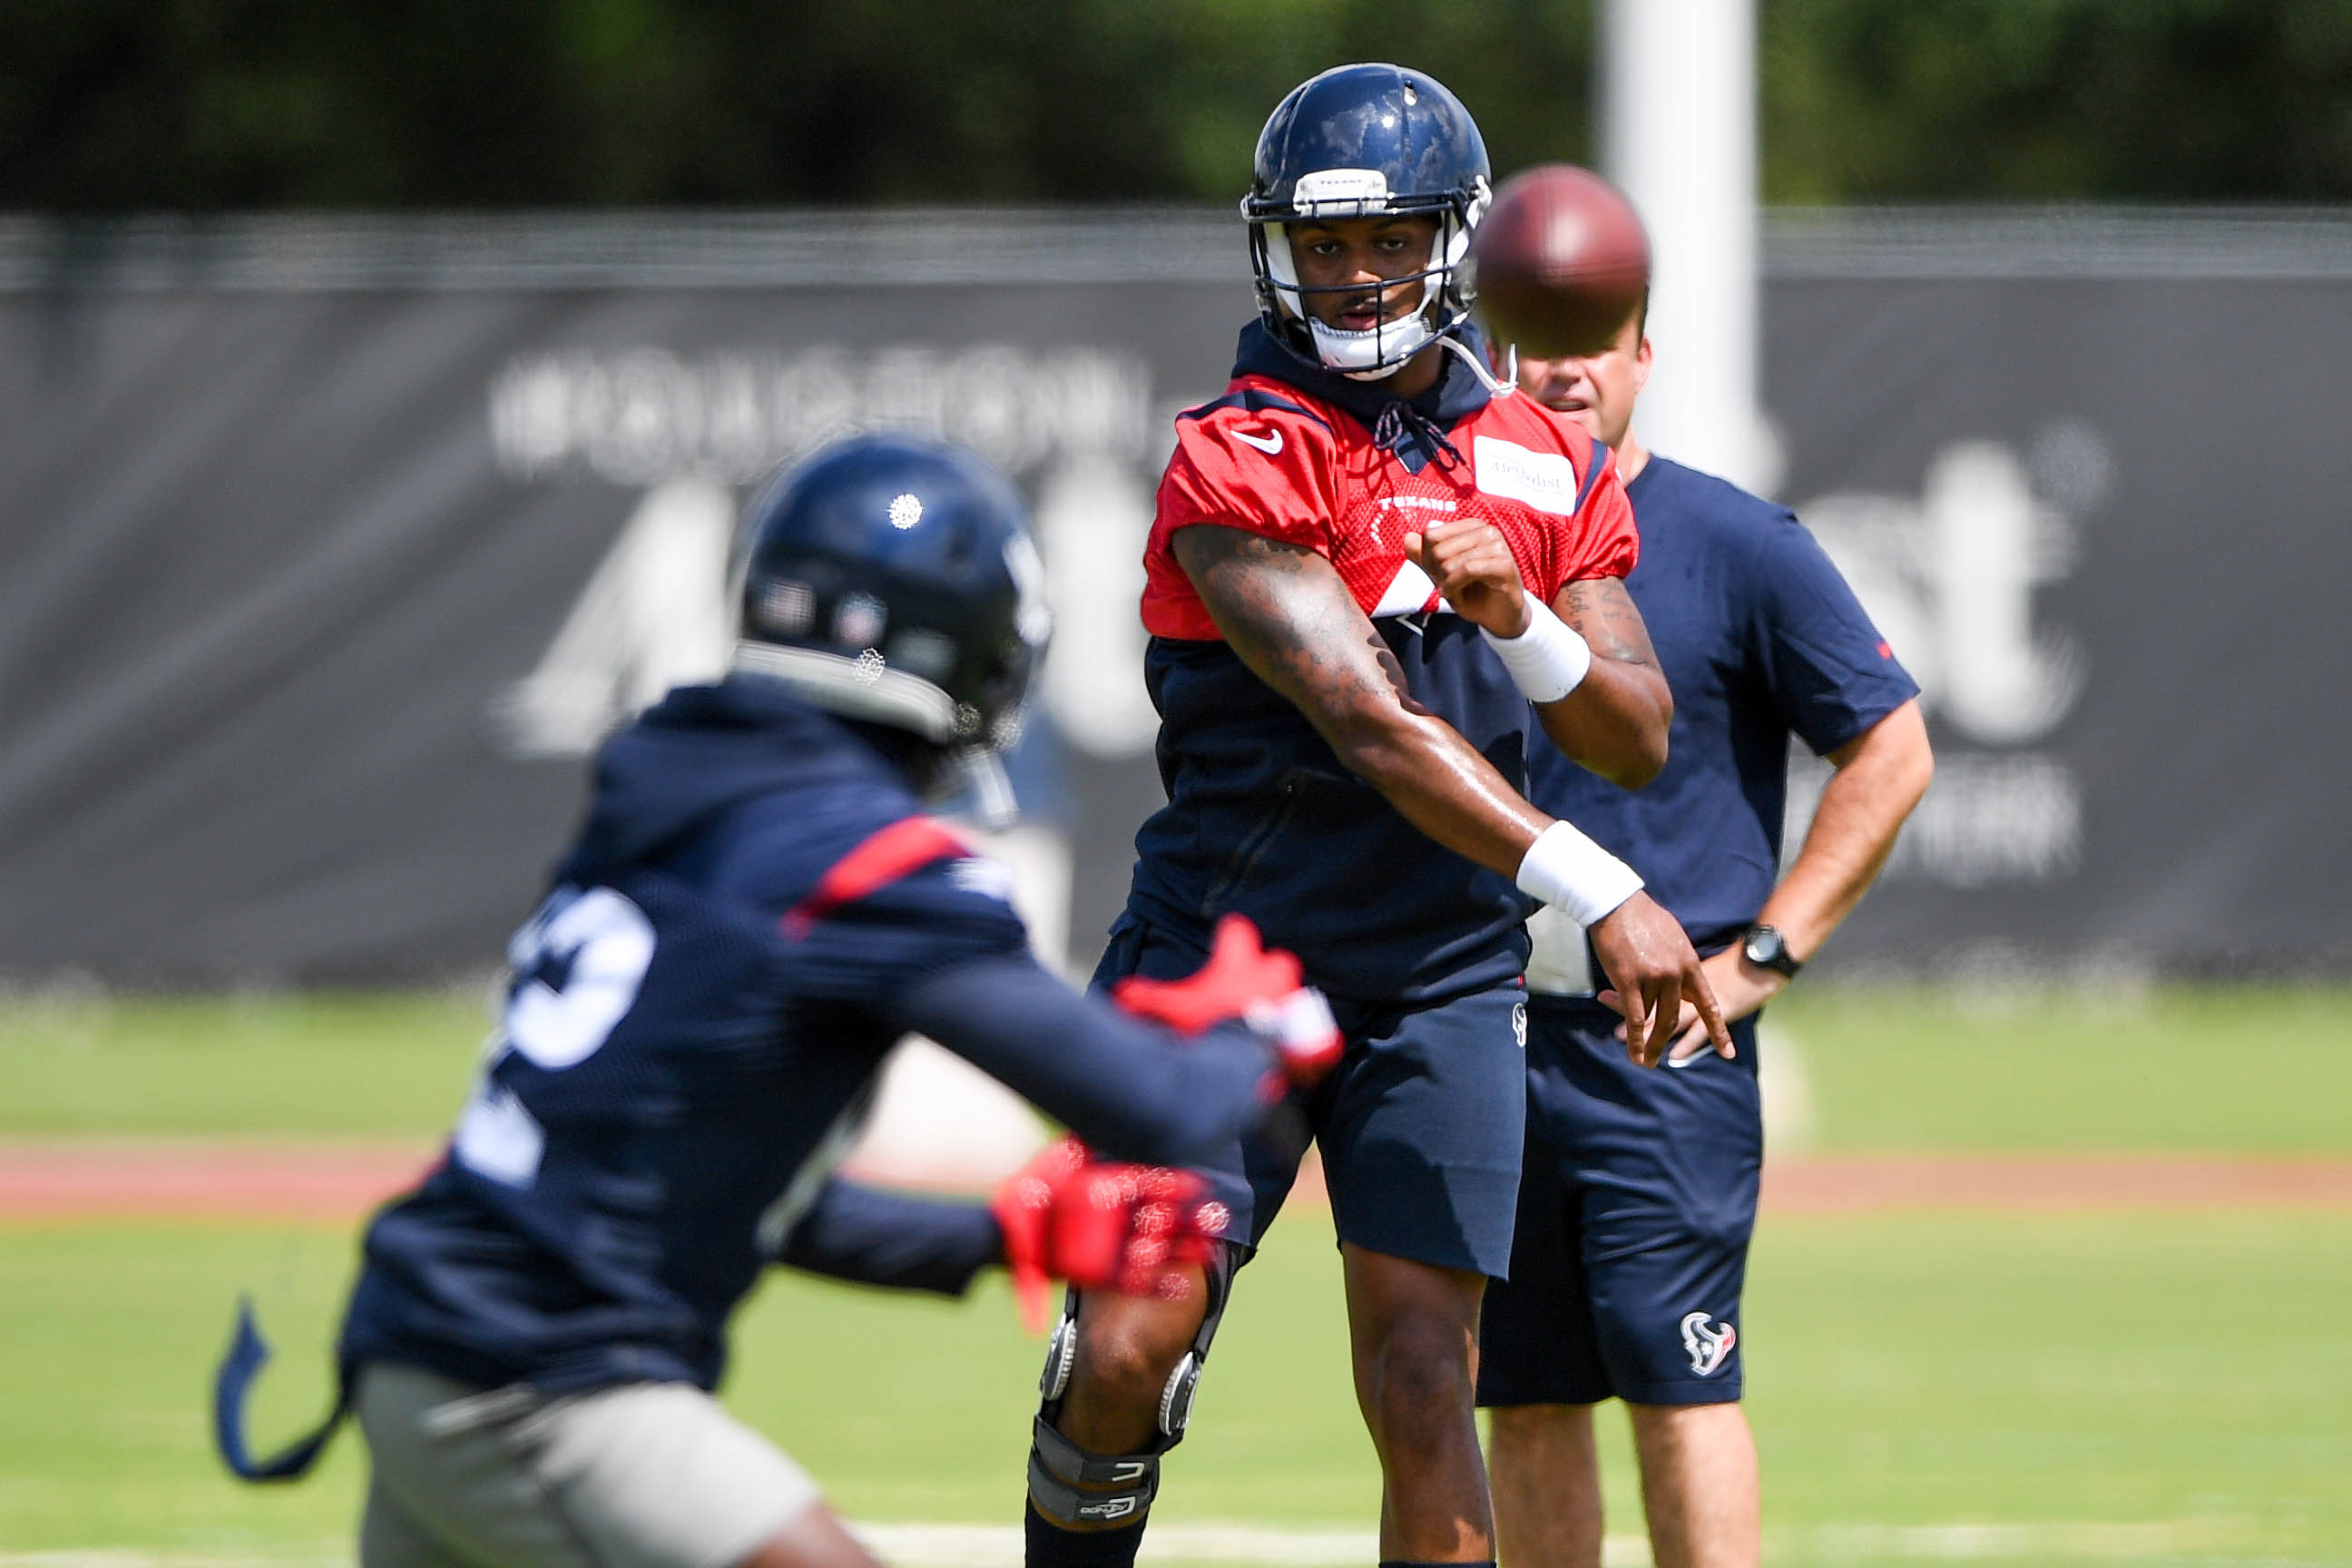 May 22, 2018; Houston, TX, USA; Houston Texans quarterback Deshaun Watson (4) throws a pass during organized team activities at the team outdoor practice facility in Houston, Texas. Mandatory Credit: Shanna Lockwood-USA TODAY Sports